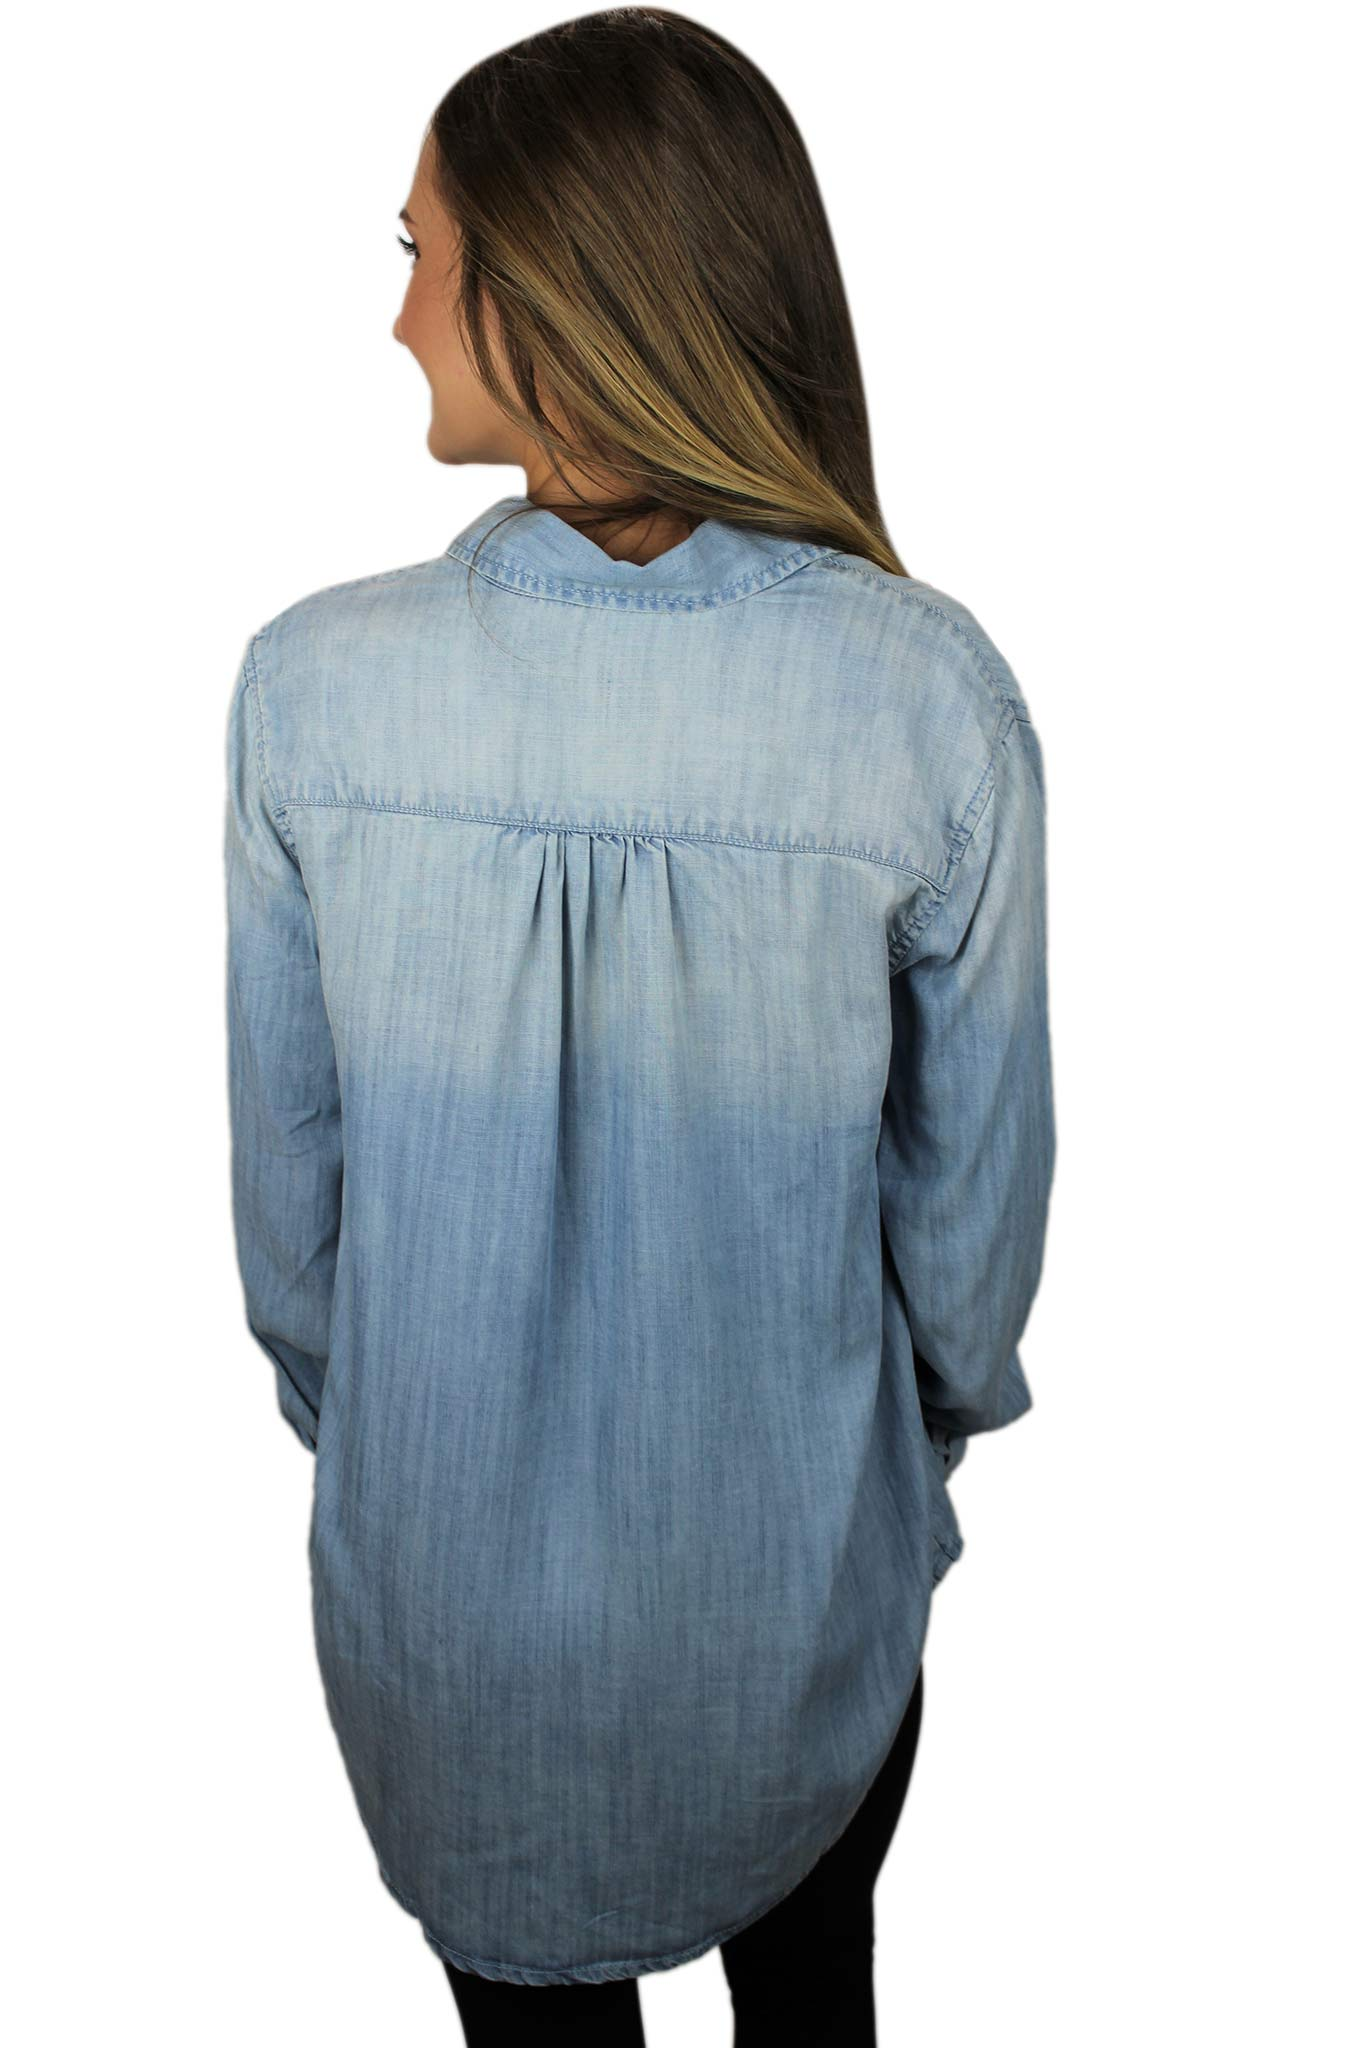 Dreamin' of Denim Top